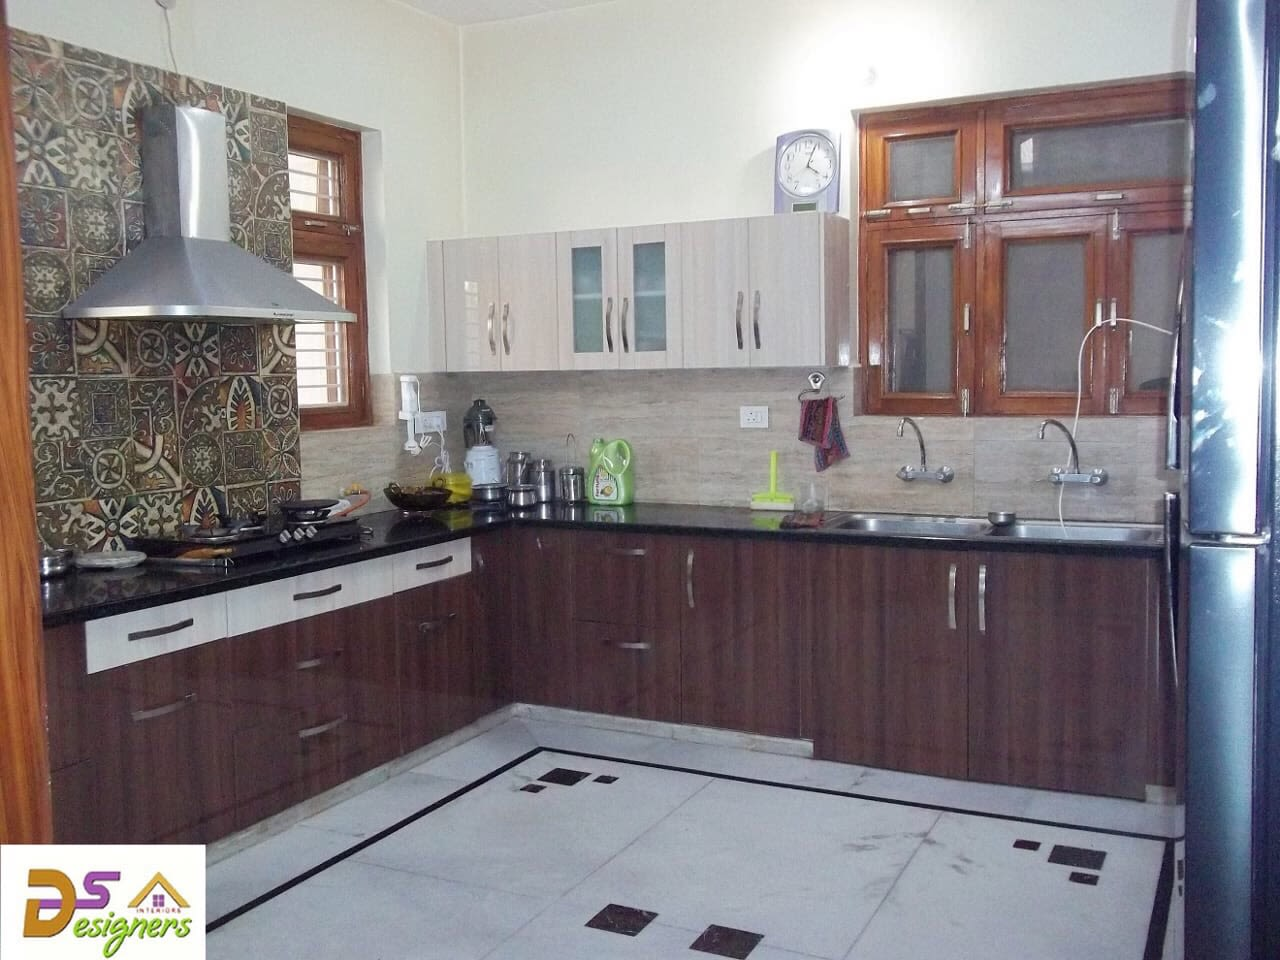 L Shaped Kitchen With Wooden Cabinets by Shivraj Singh Modular-kitchen Contemporary | Interior Design Photos & Ideas